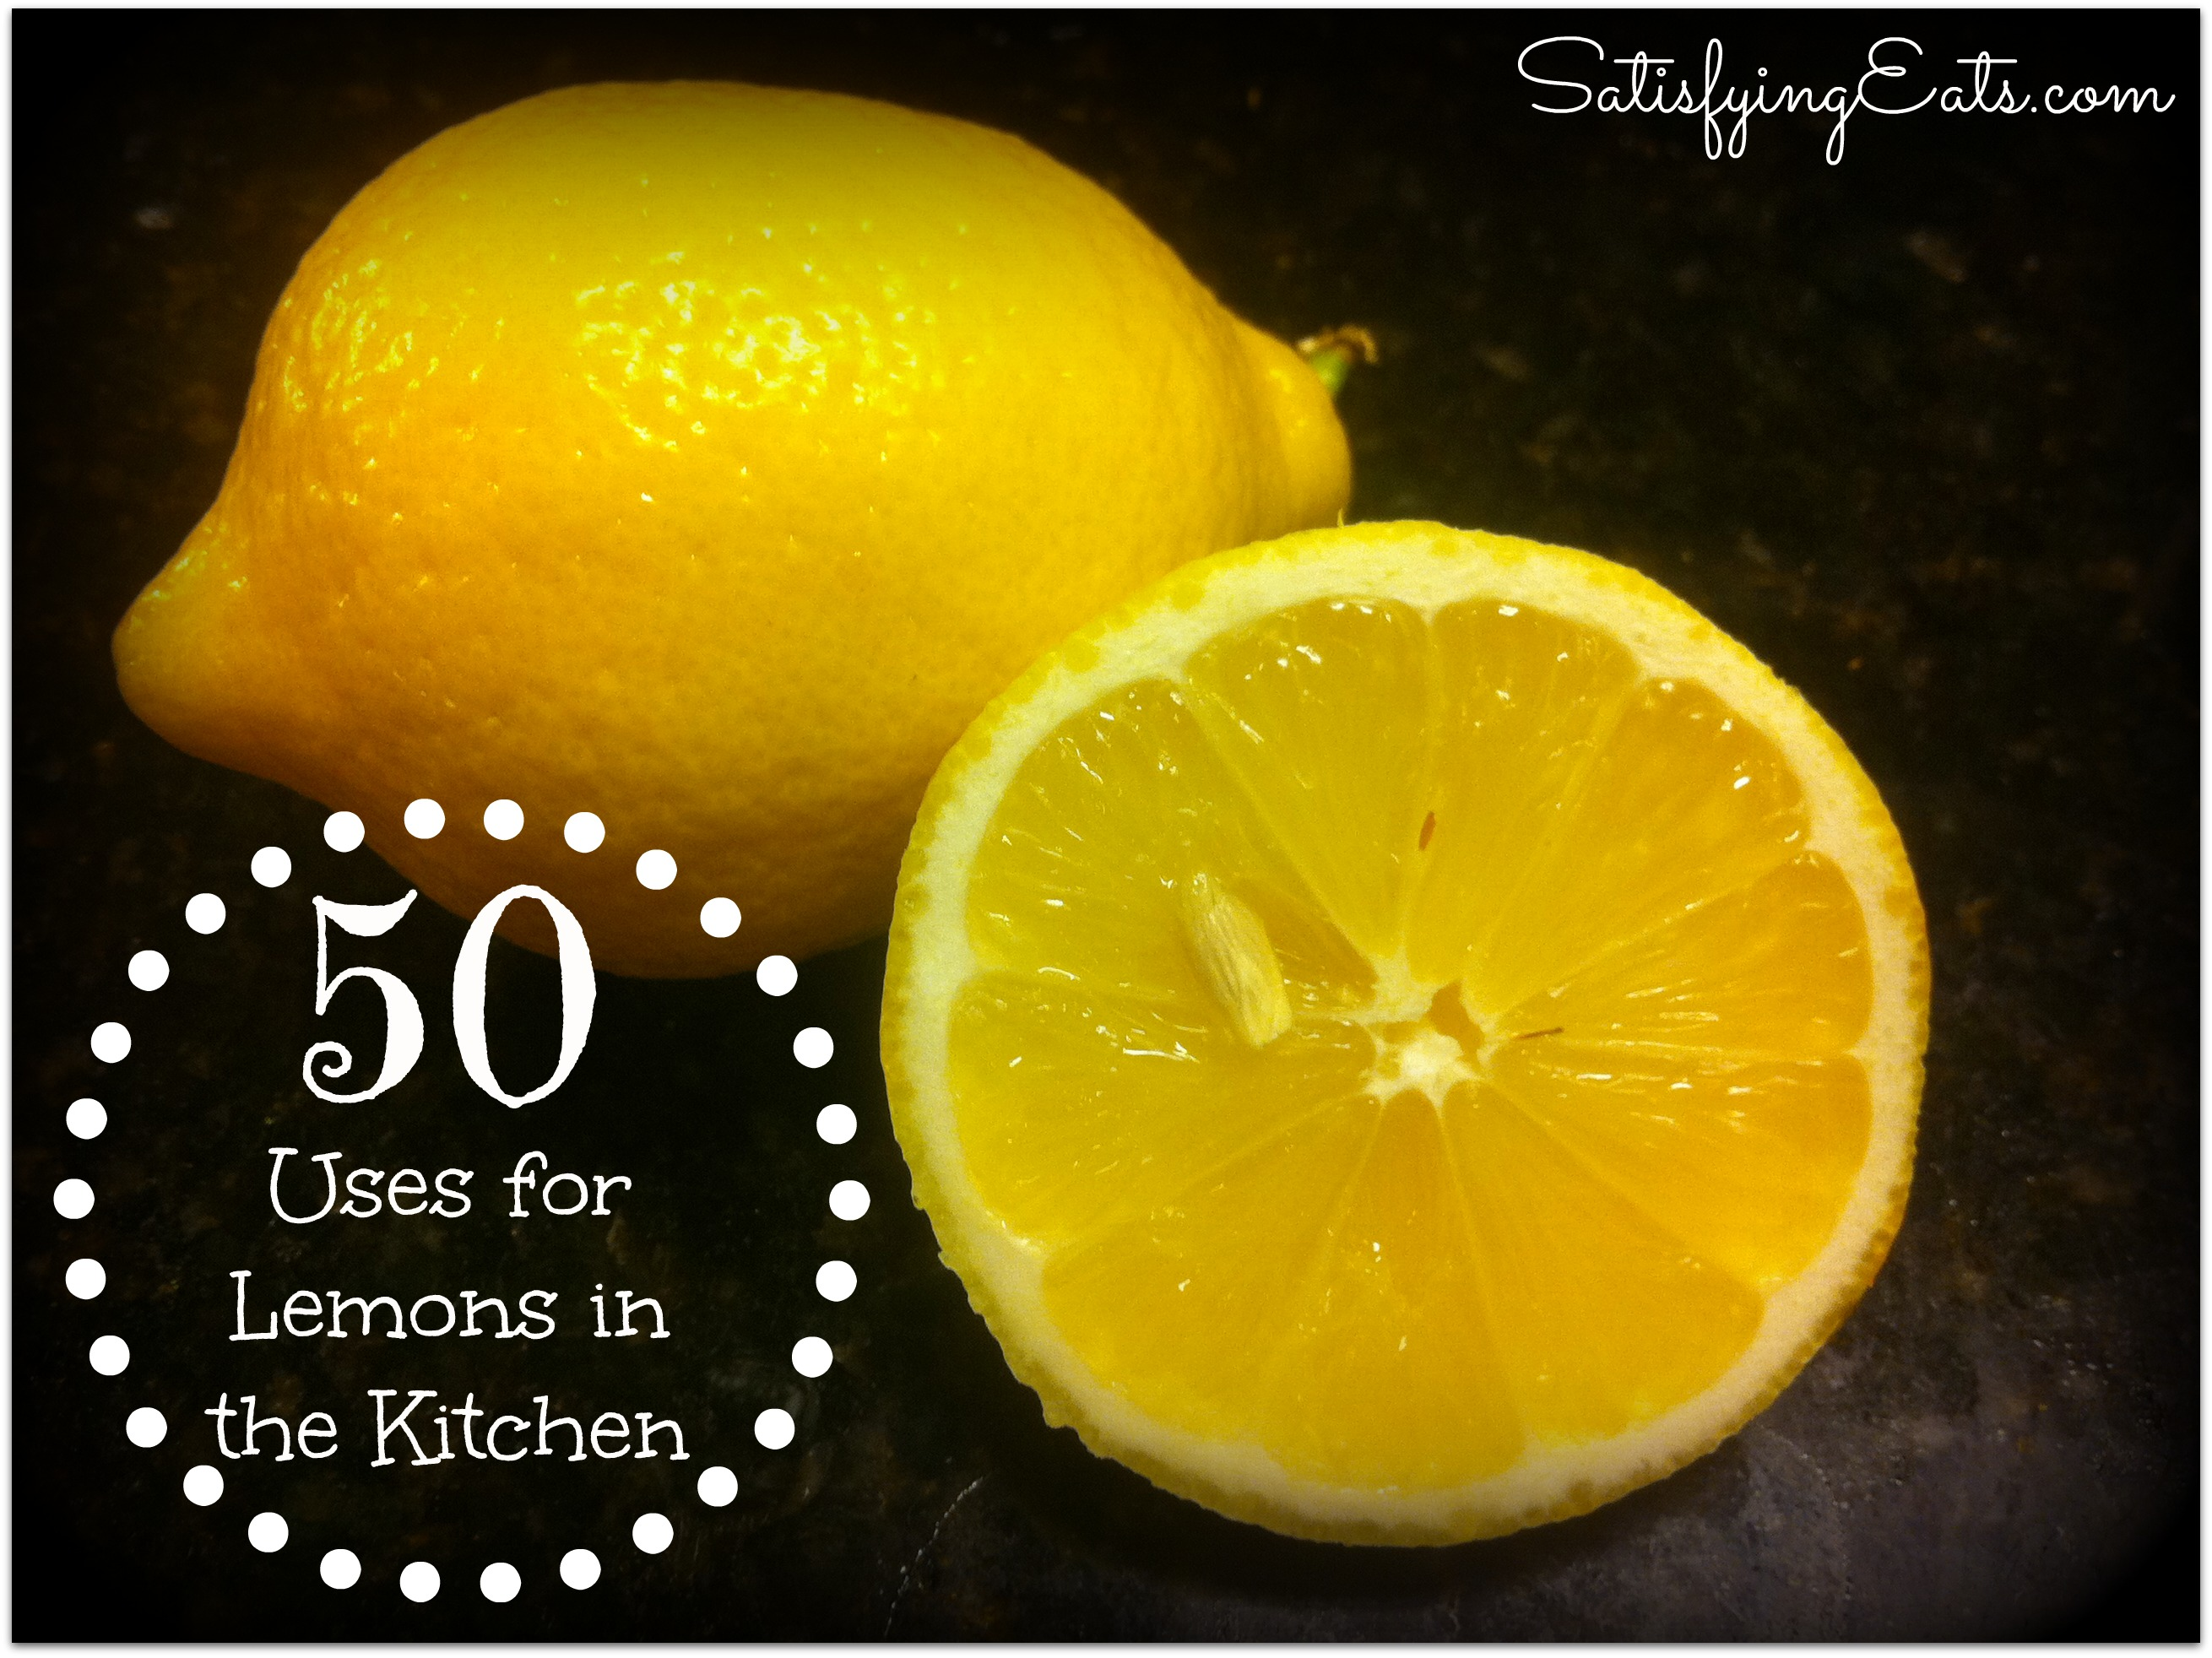 50 Uses for Lemons in the Kitchen